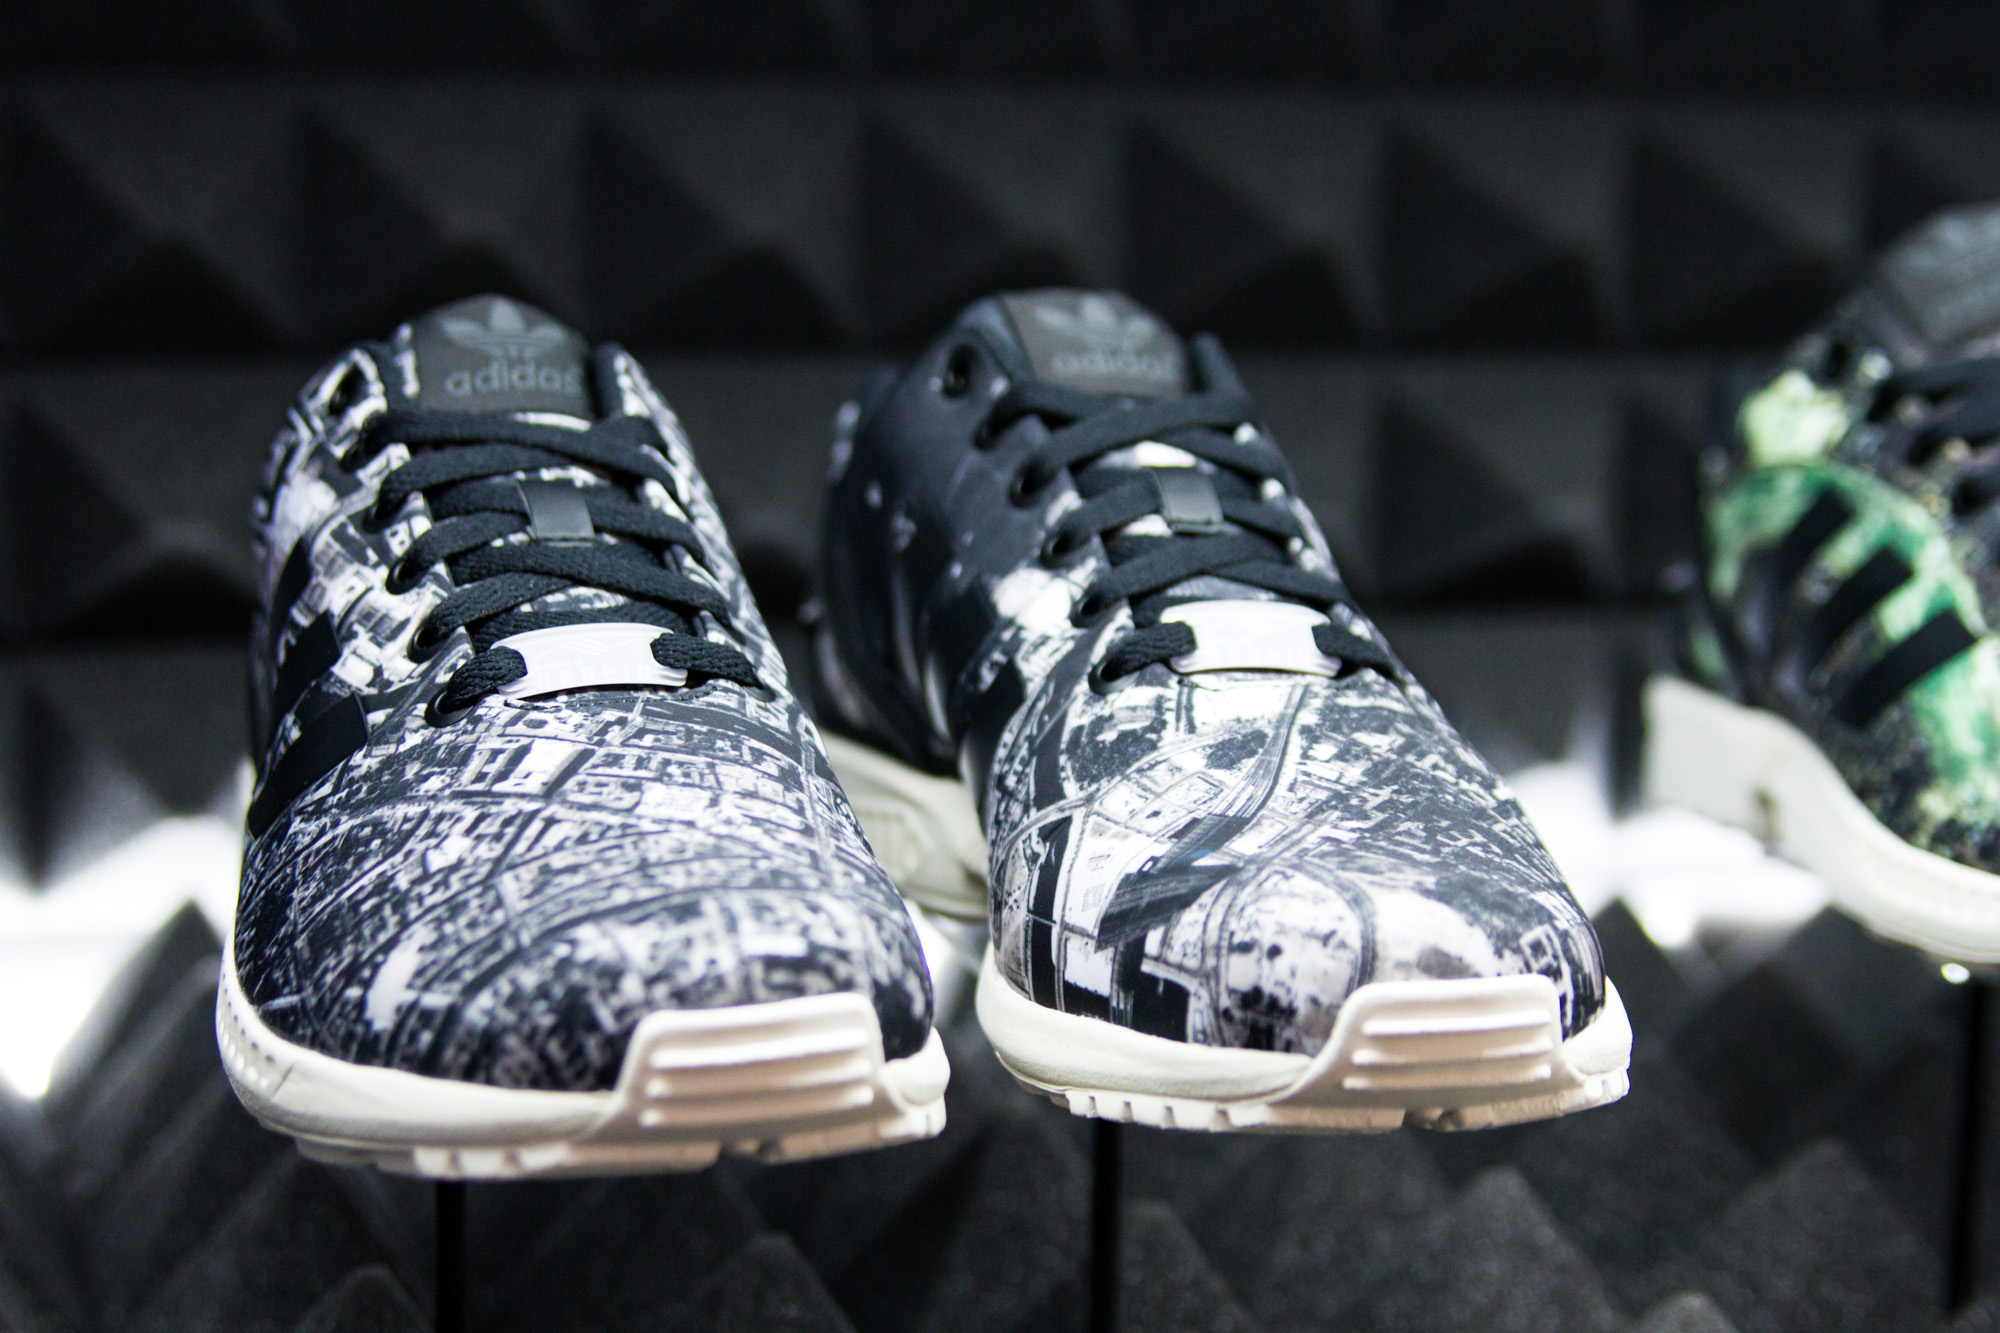 adidas Originals ZX FLUX «Berlin» edition (only available in Berlin)